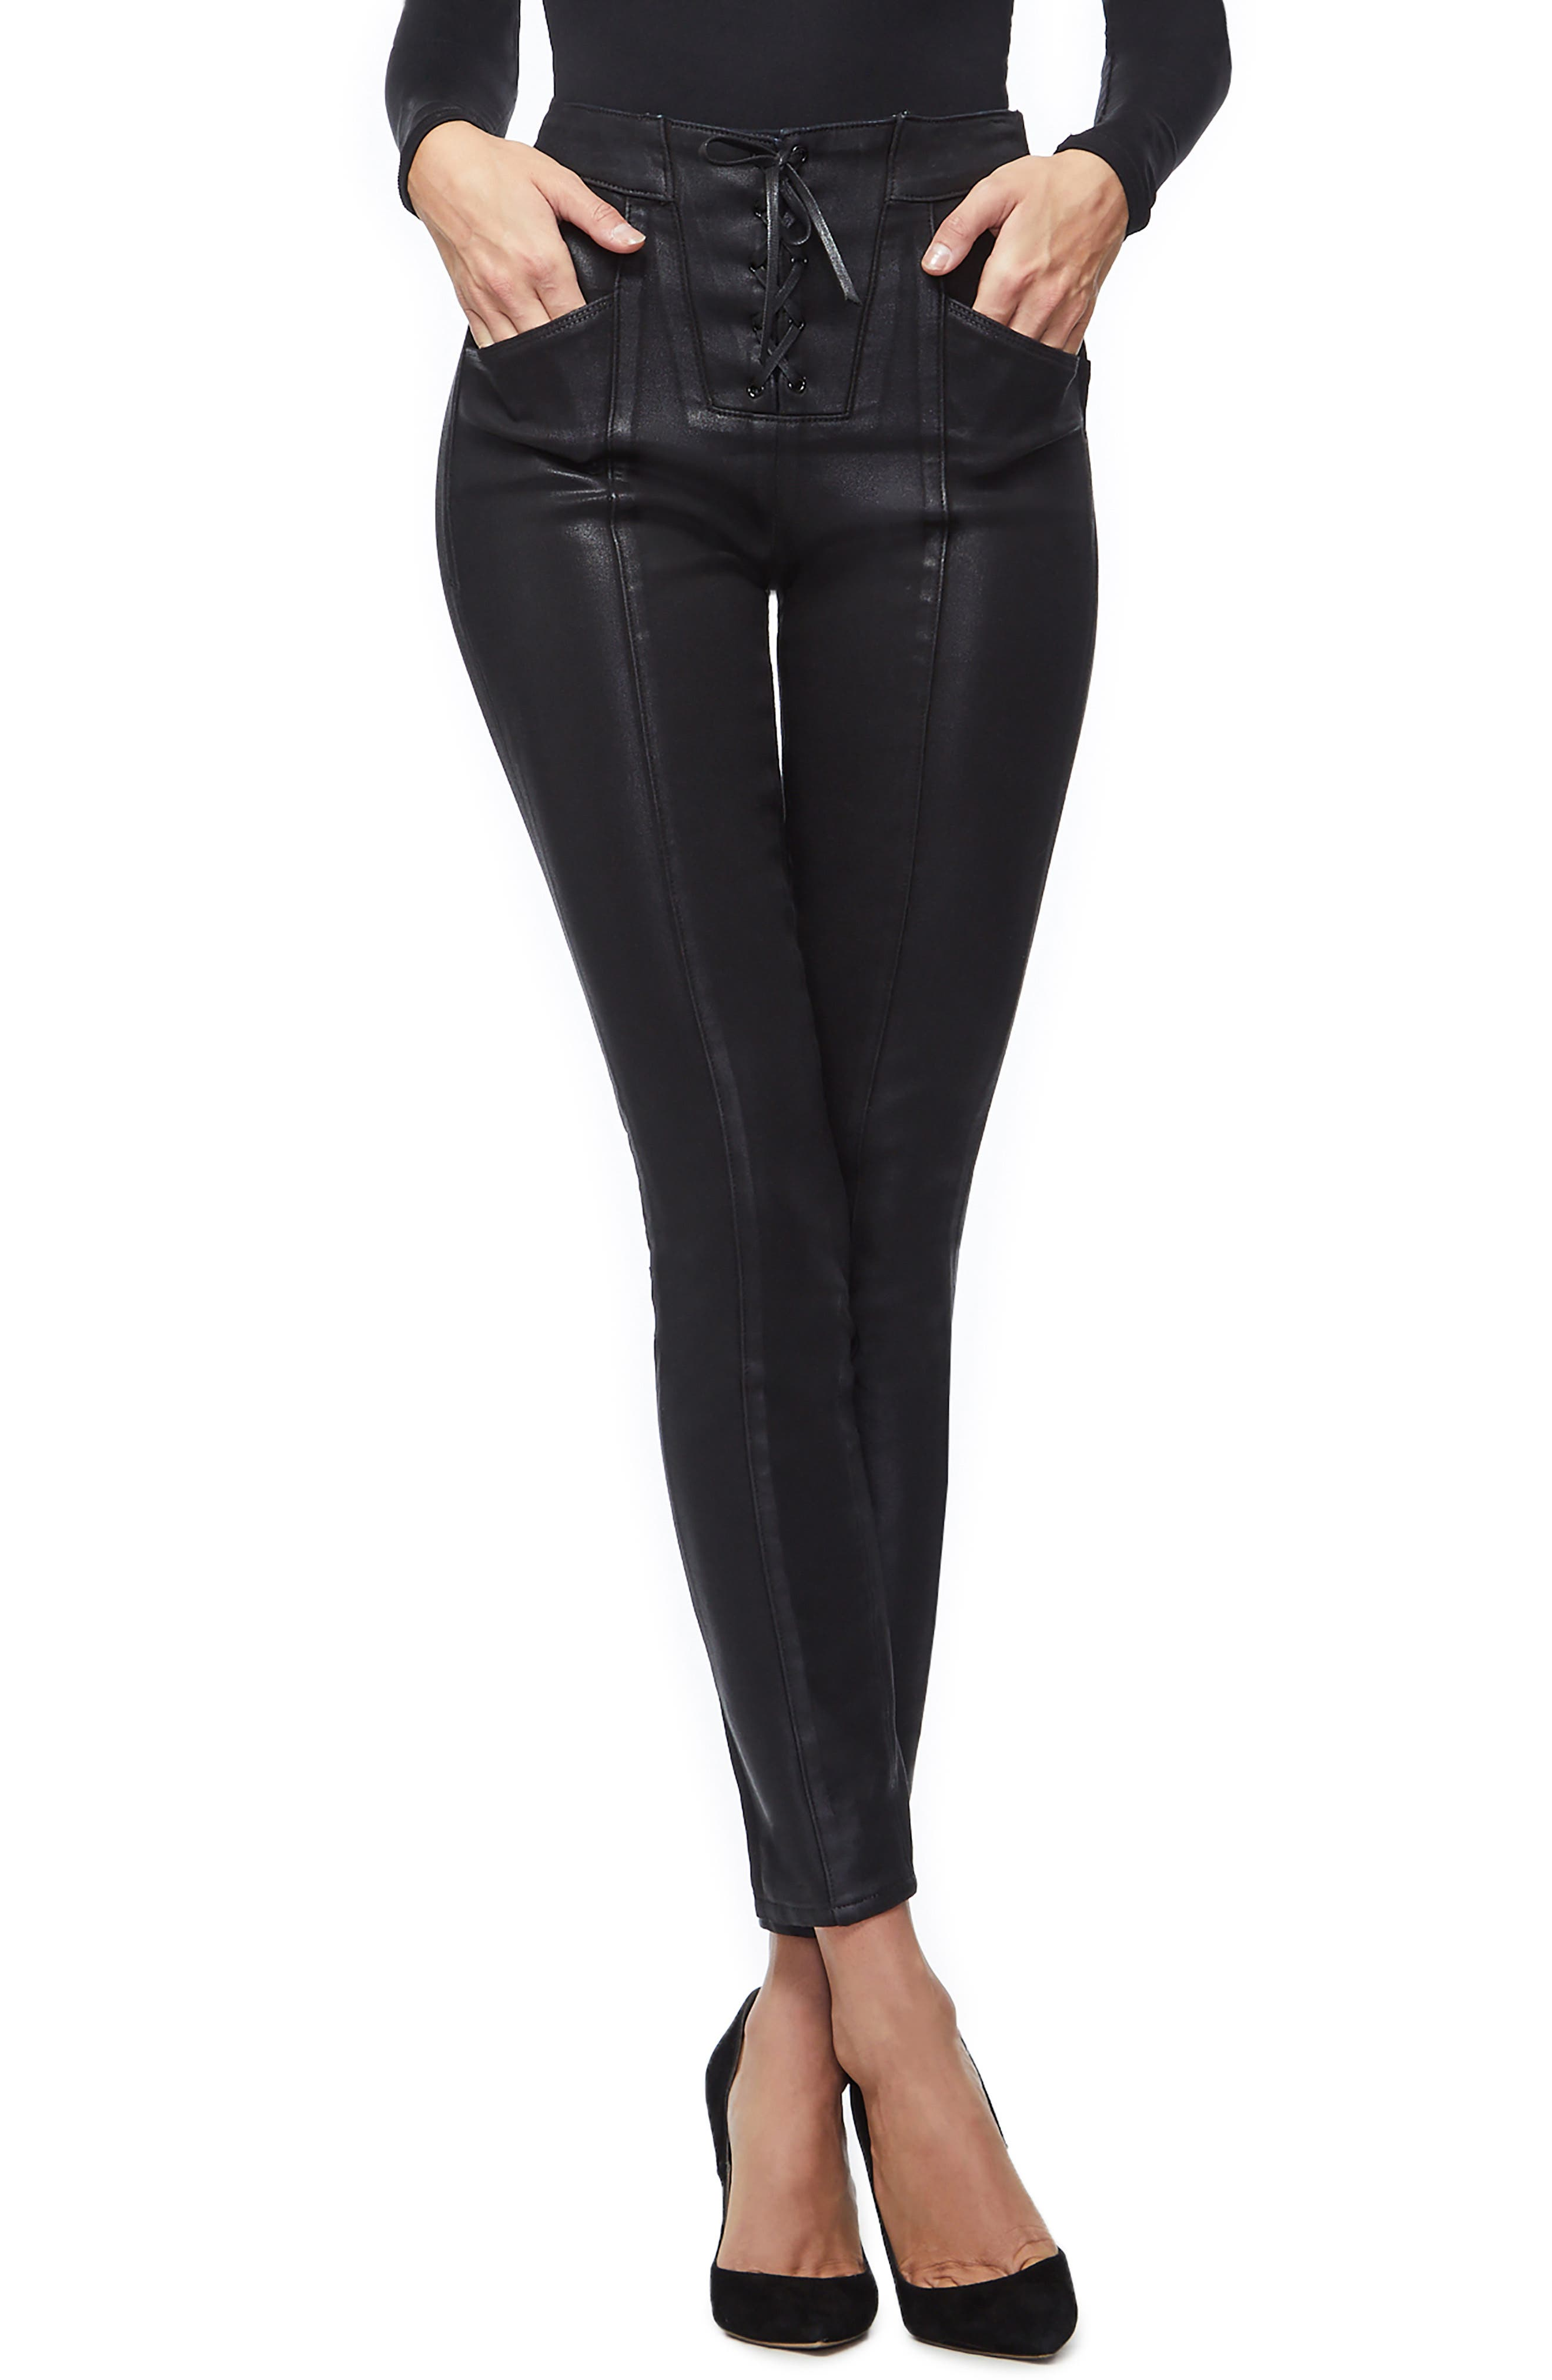 Coated Lace-Up High Waist Skinny Jeans,                             Main thumbnail 1, color,                             BLACK034